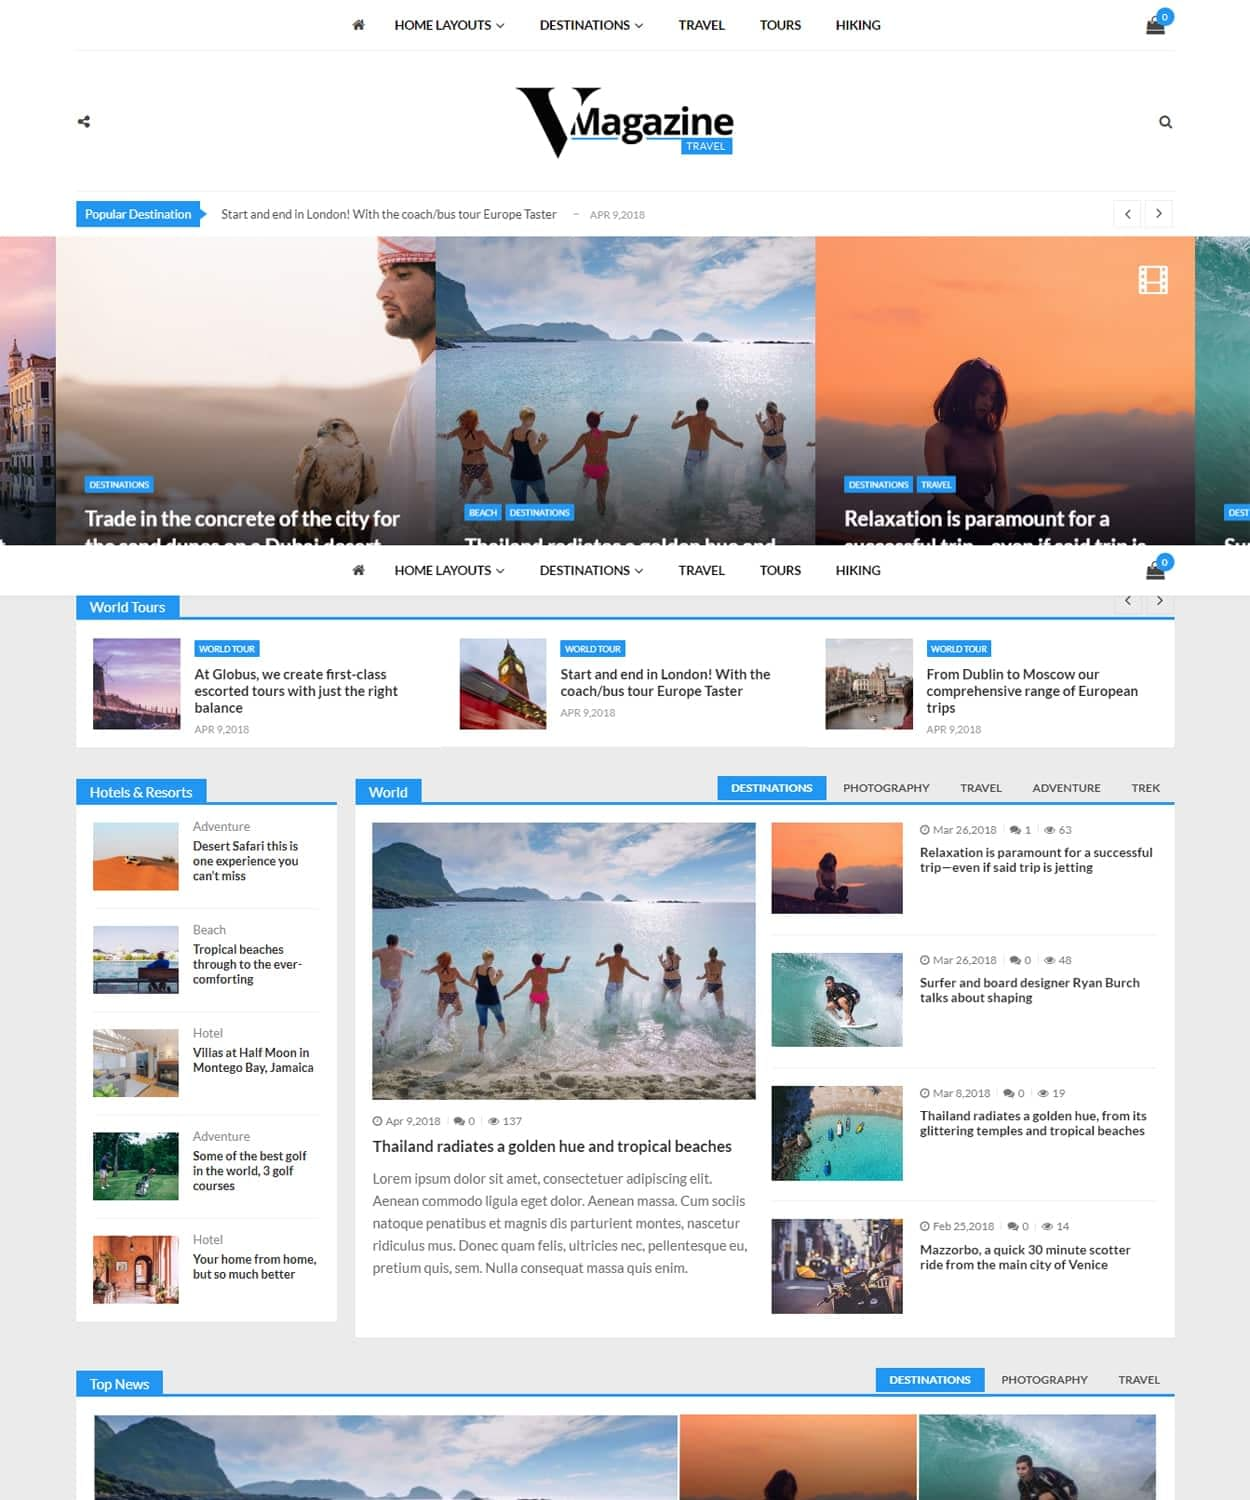 Travel Magazine Demo - WordPress Magazine Theme